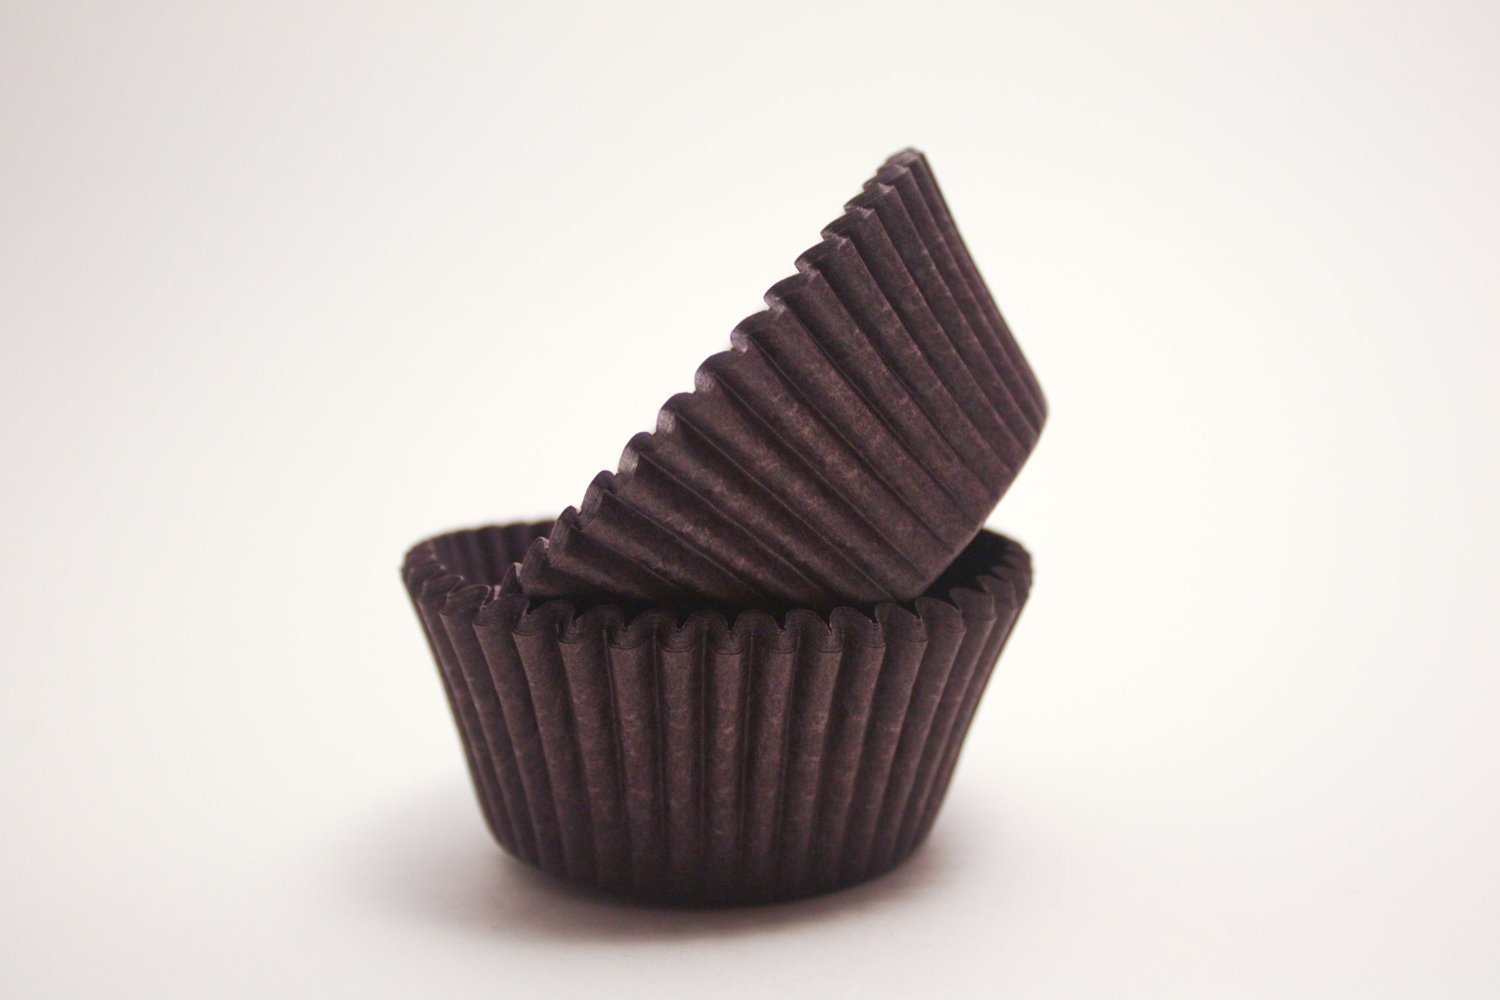 DECONY Brown jumbo Cupcake muffin baking cup Liners appx. 500 pc. SYNCHKG055470